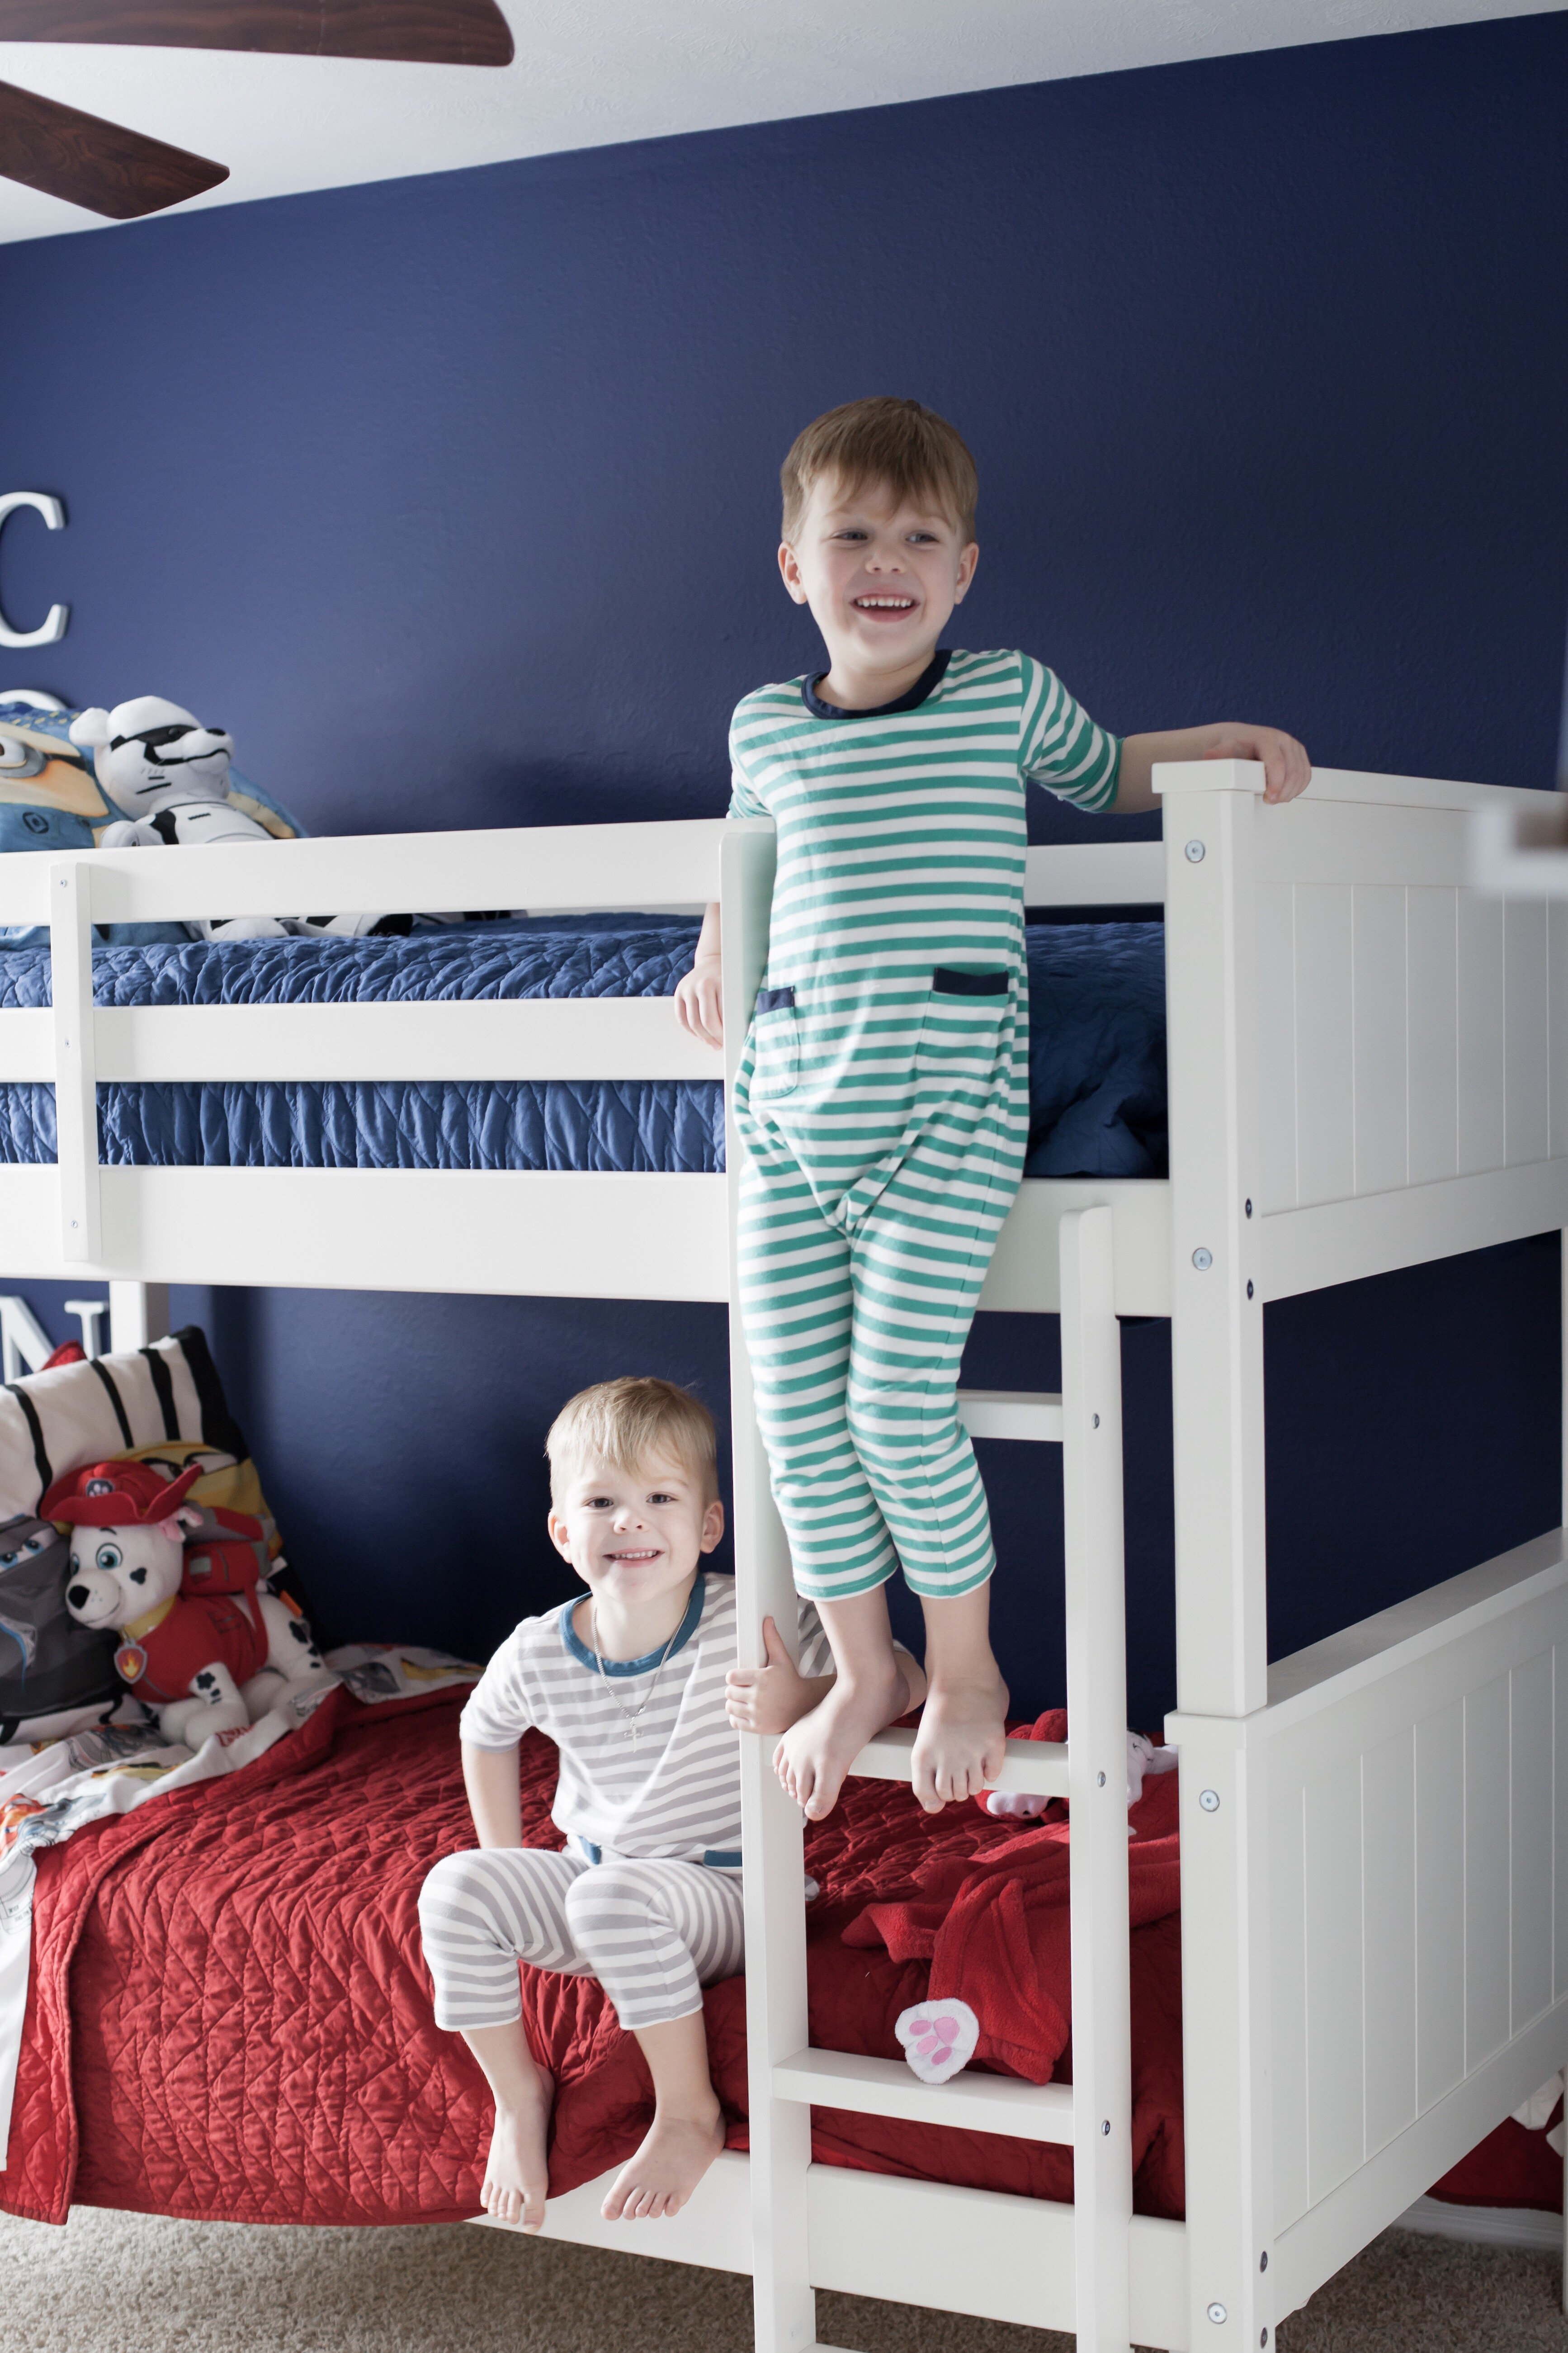 Shared toddler room ideas   shared boy room ideas   shared room decor ideas   toddler boy room   Uptown with Elly Brown